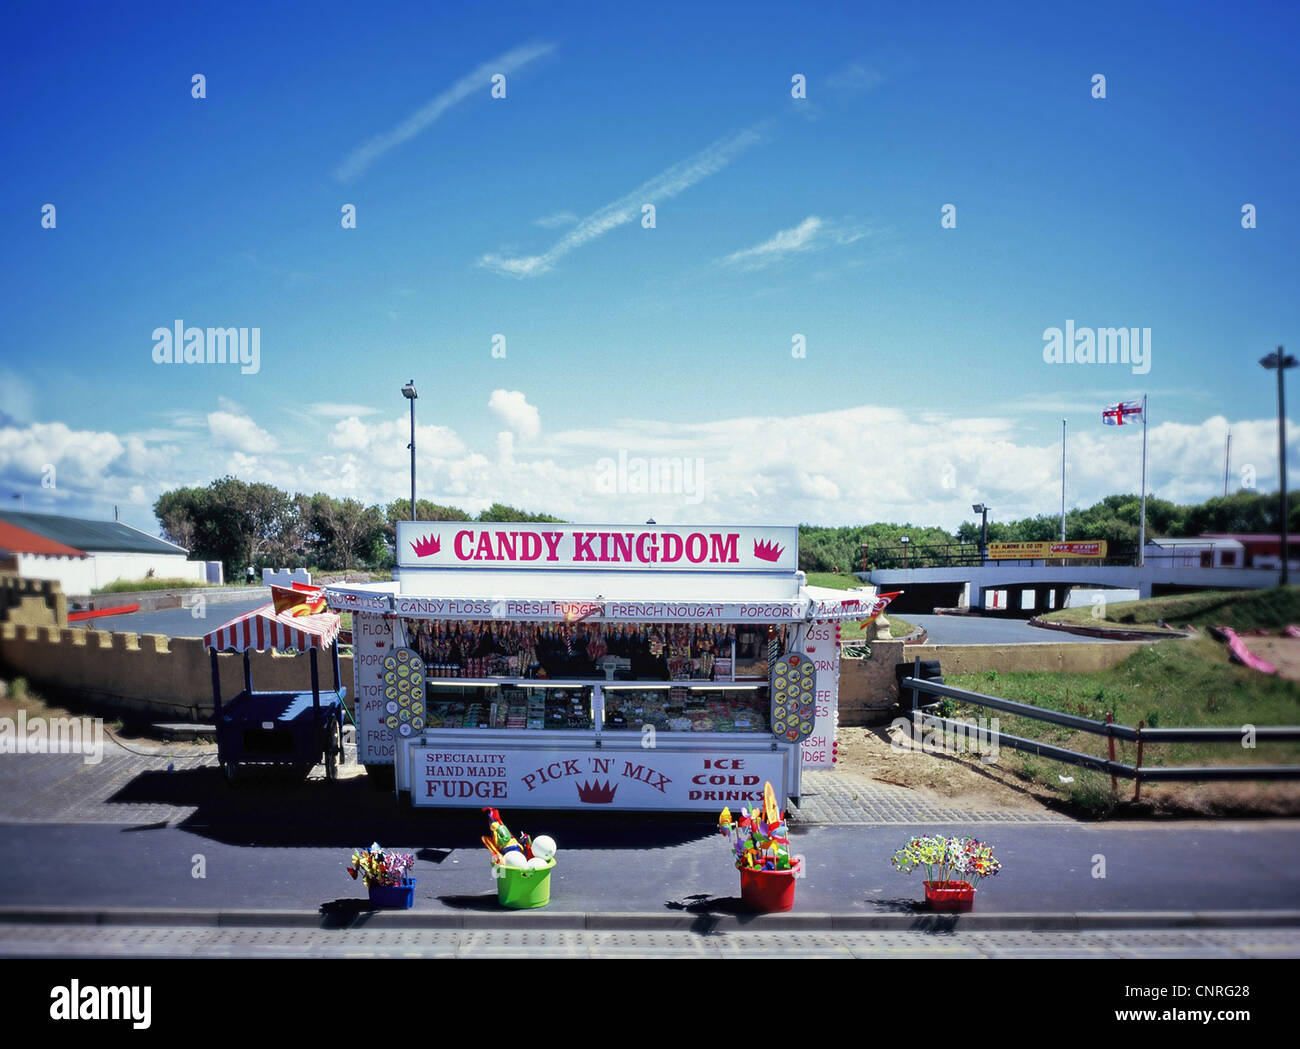 British seaside rock and sweet stall. - Stock Image